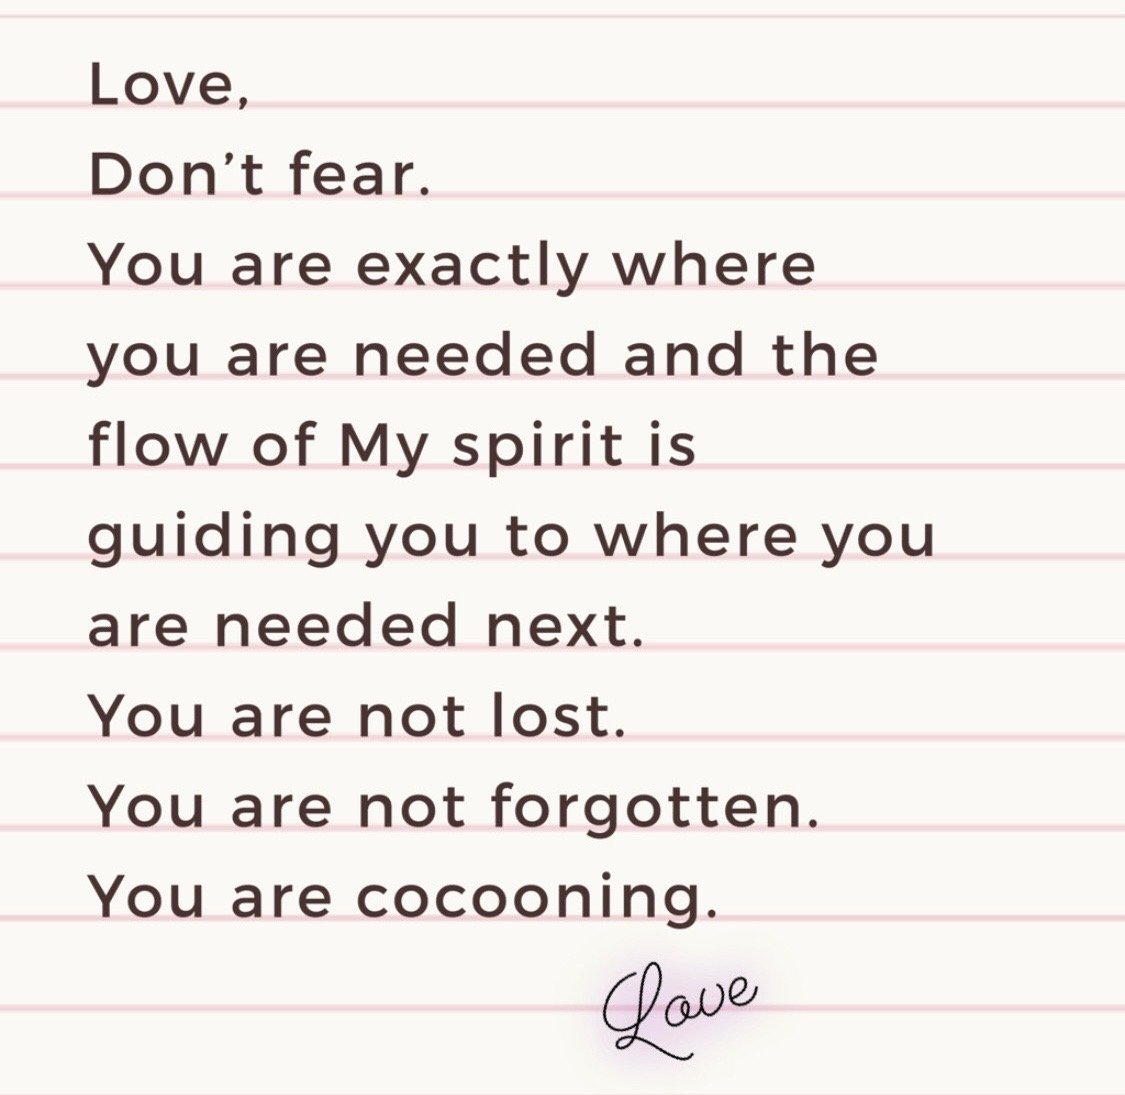 #herLoveNotes: You are Cocooning